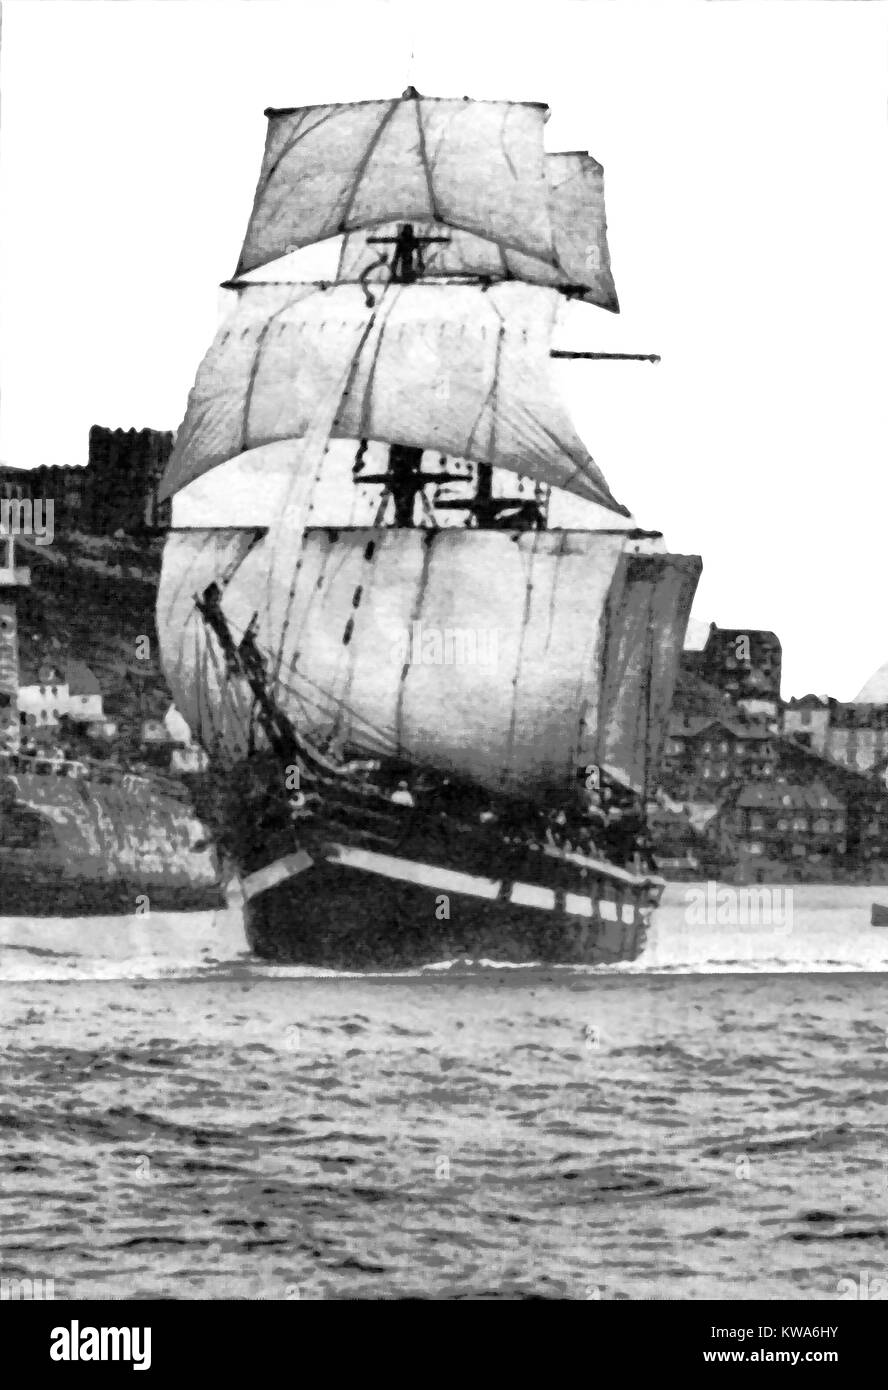 MARQUES  -  SAILING SHIP  ( A Barque that was originally a 1917 Spanish built Polacca-rigged  Brig)  - LEAVING WHITBY, - Stock Image